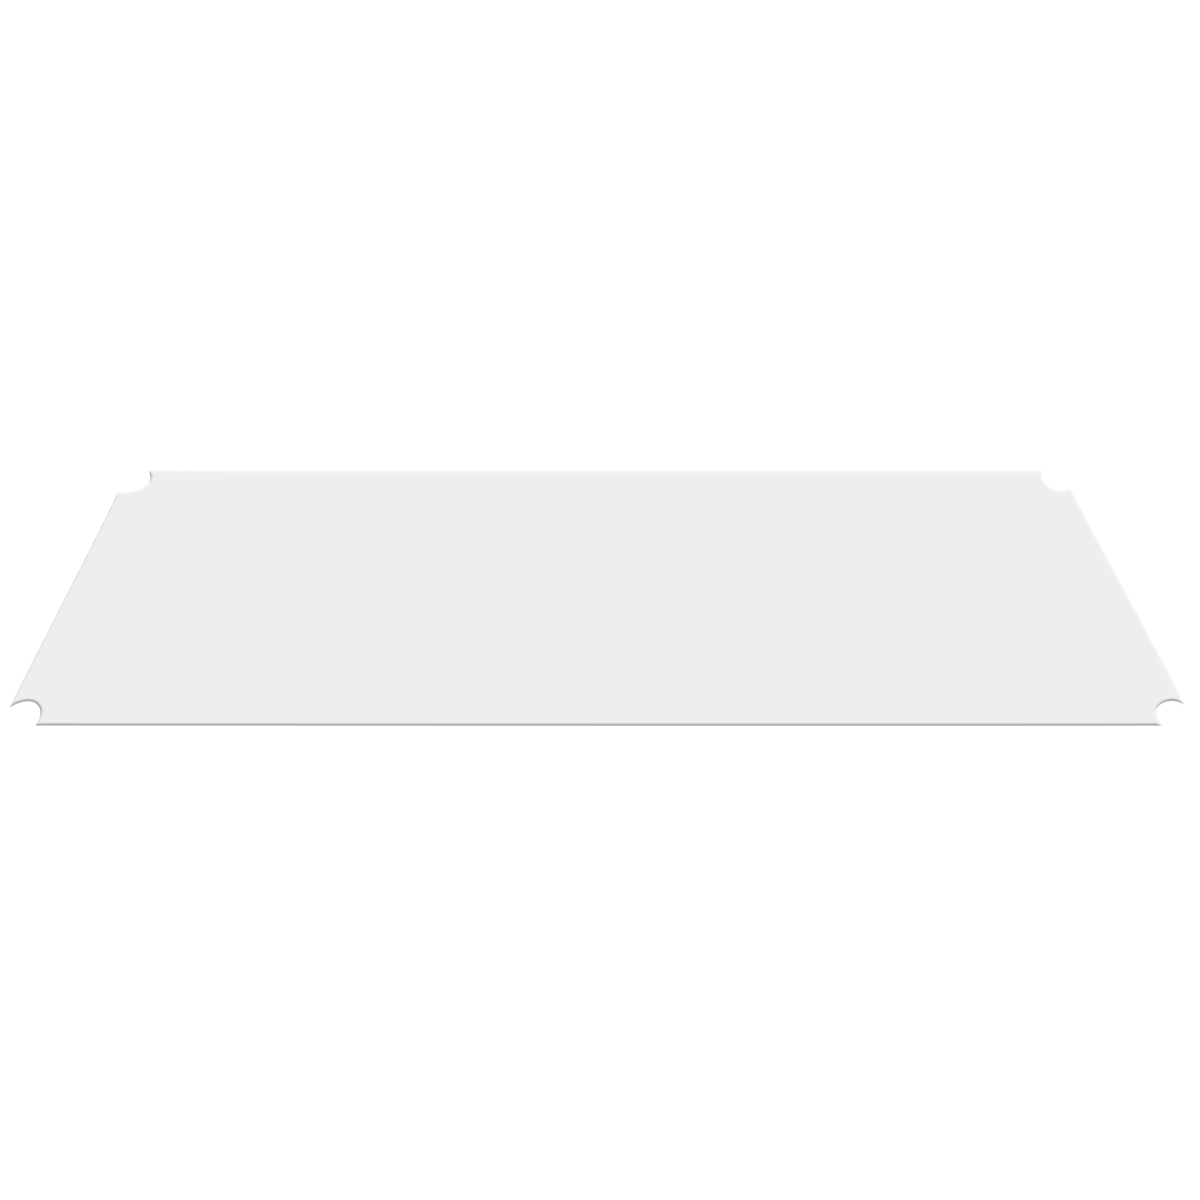 Item DISCONTINUED by Manufacturer.  12 x 48 Shelf Liner, Clear (AW1248LINER).  This item sold in carton quantities of 4.